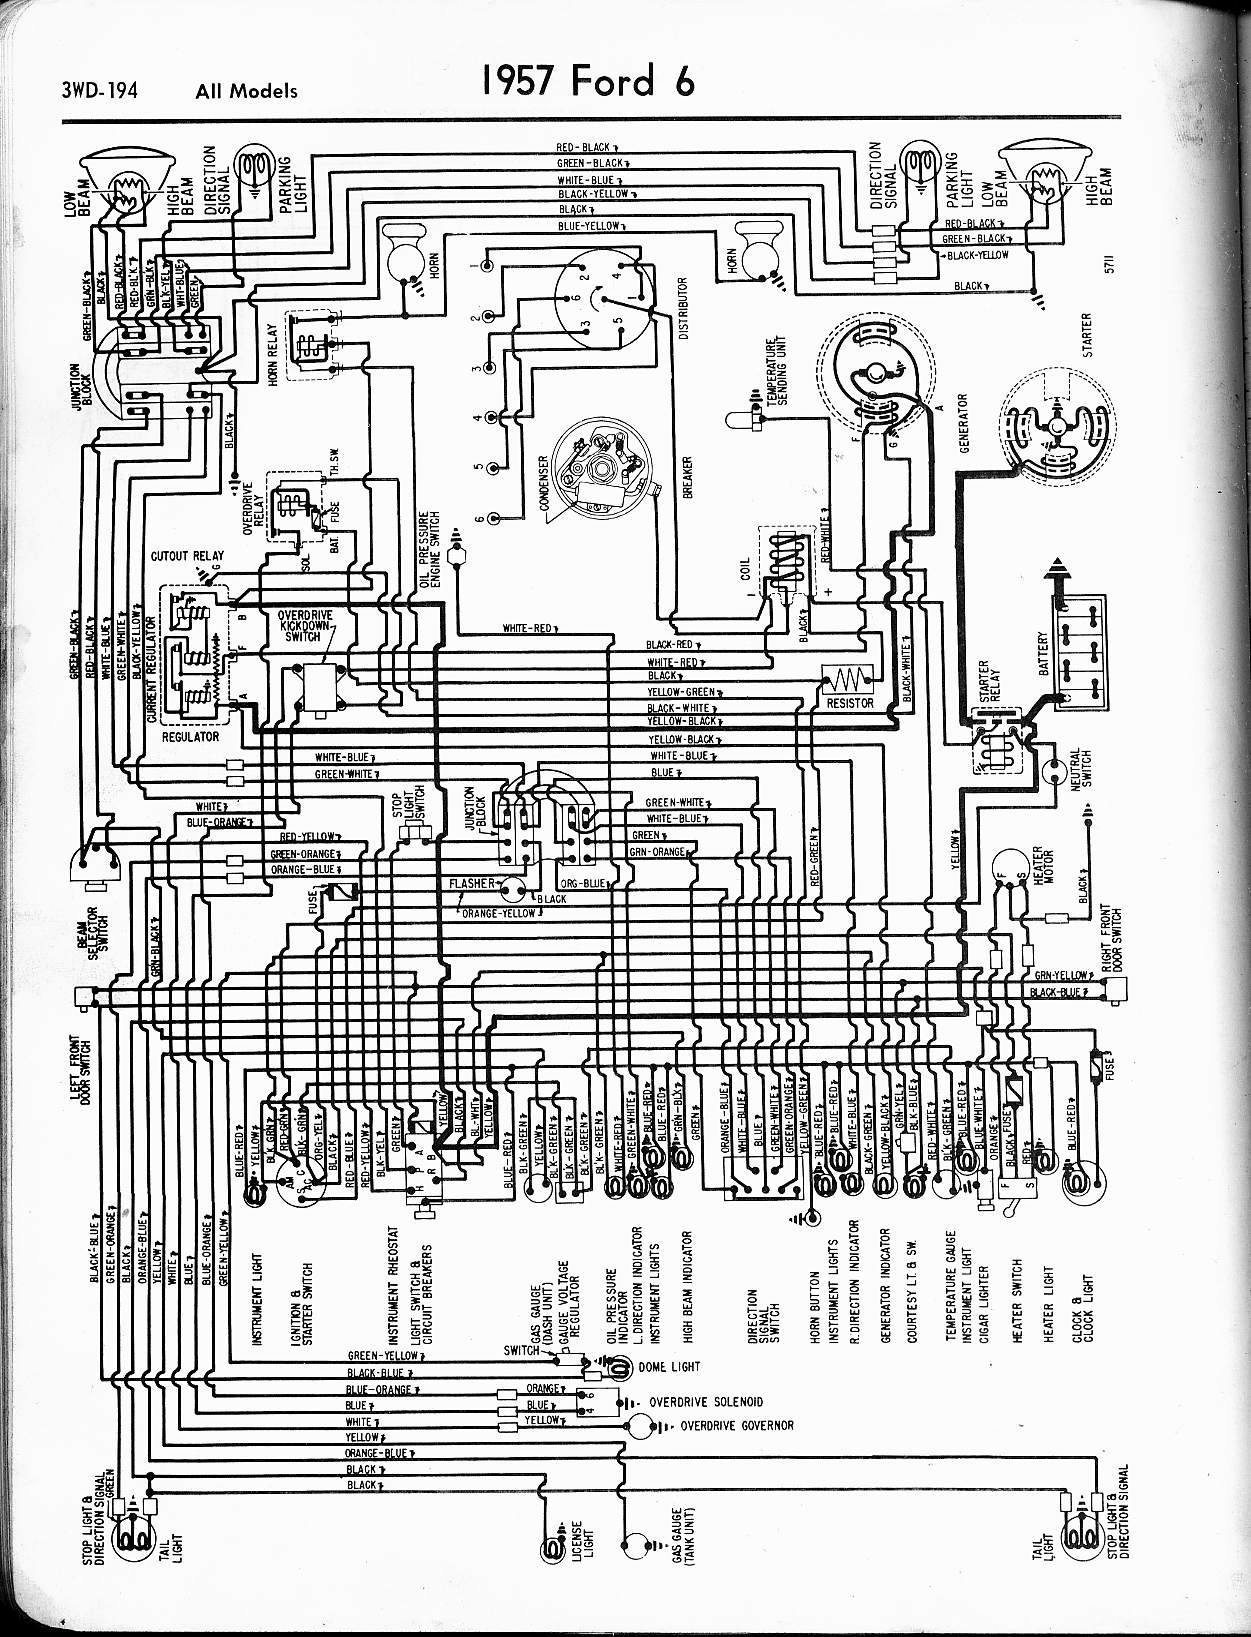 1957 Ford Thunderbird Wiring Diagram Msd Ignition Reinvent Your 6 Diagrams Rh Wizard Com Chevy